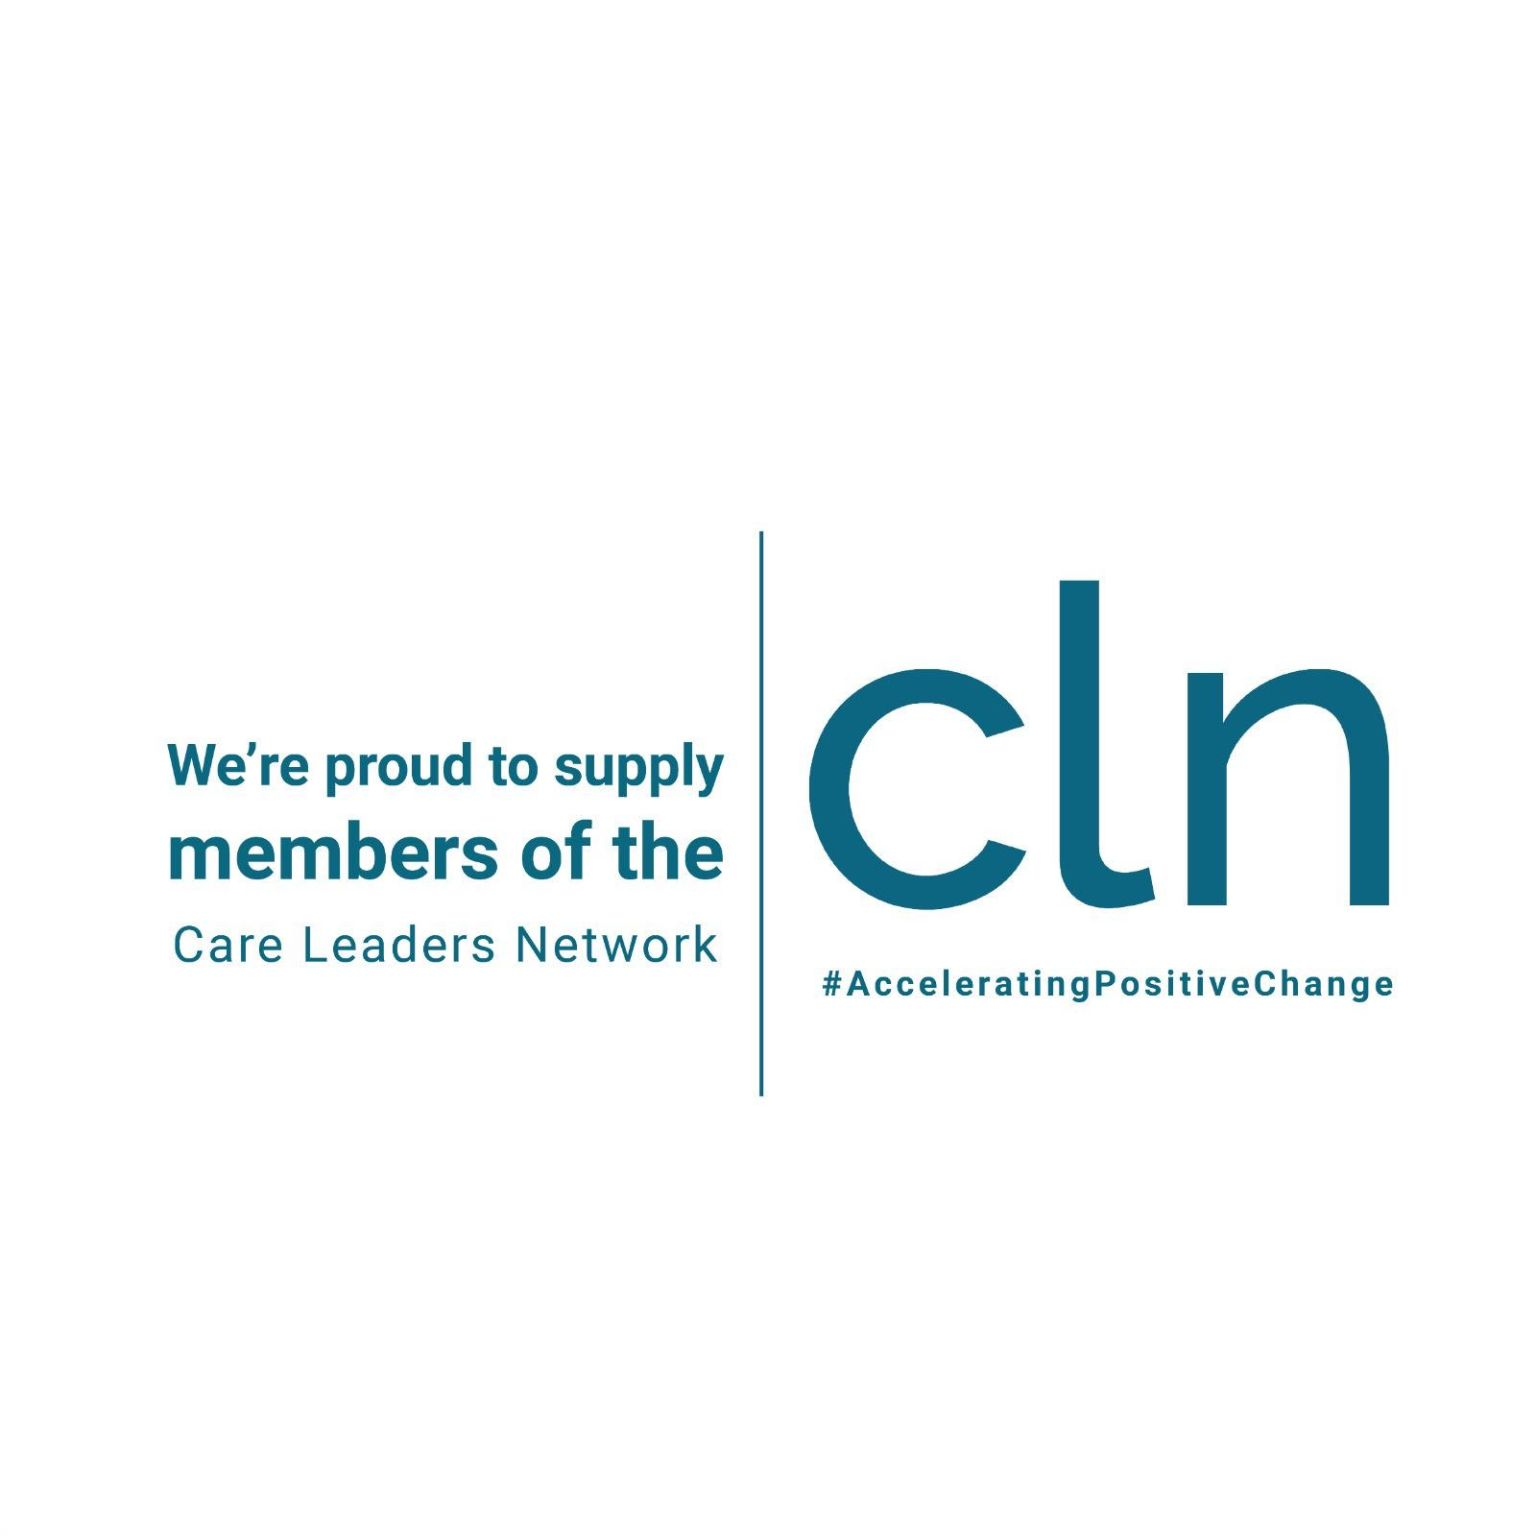 The Care Leaders Network